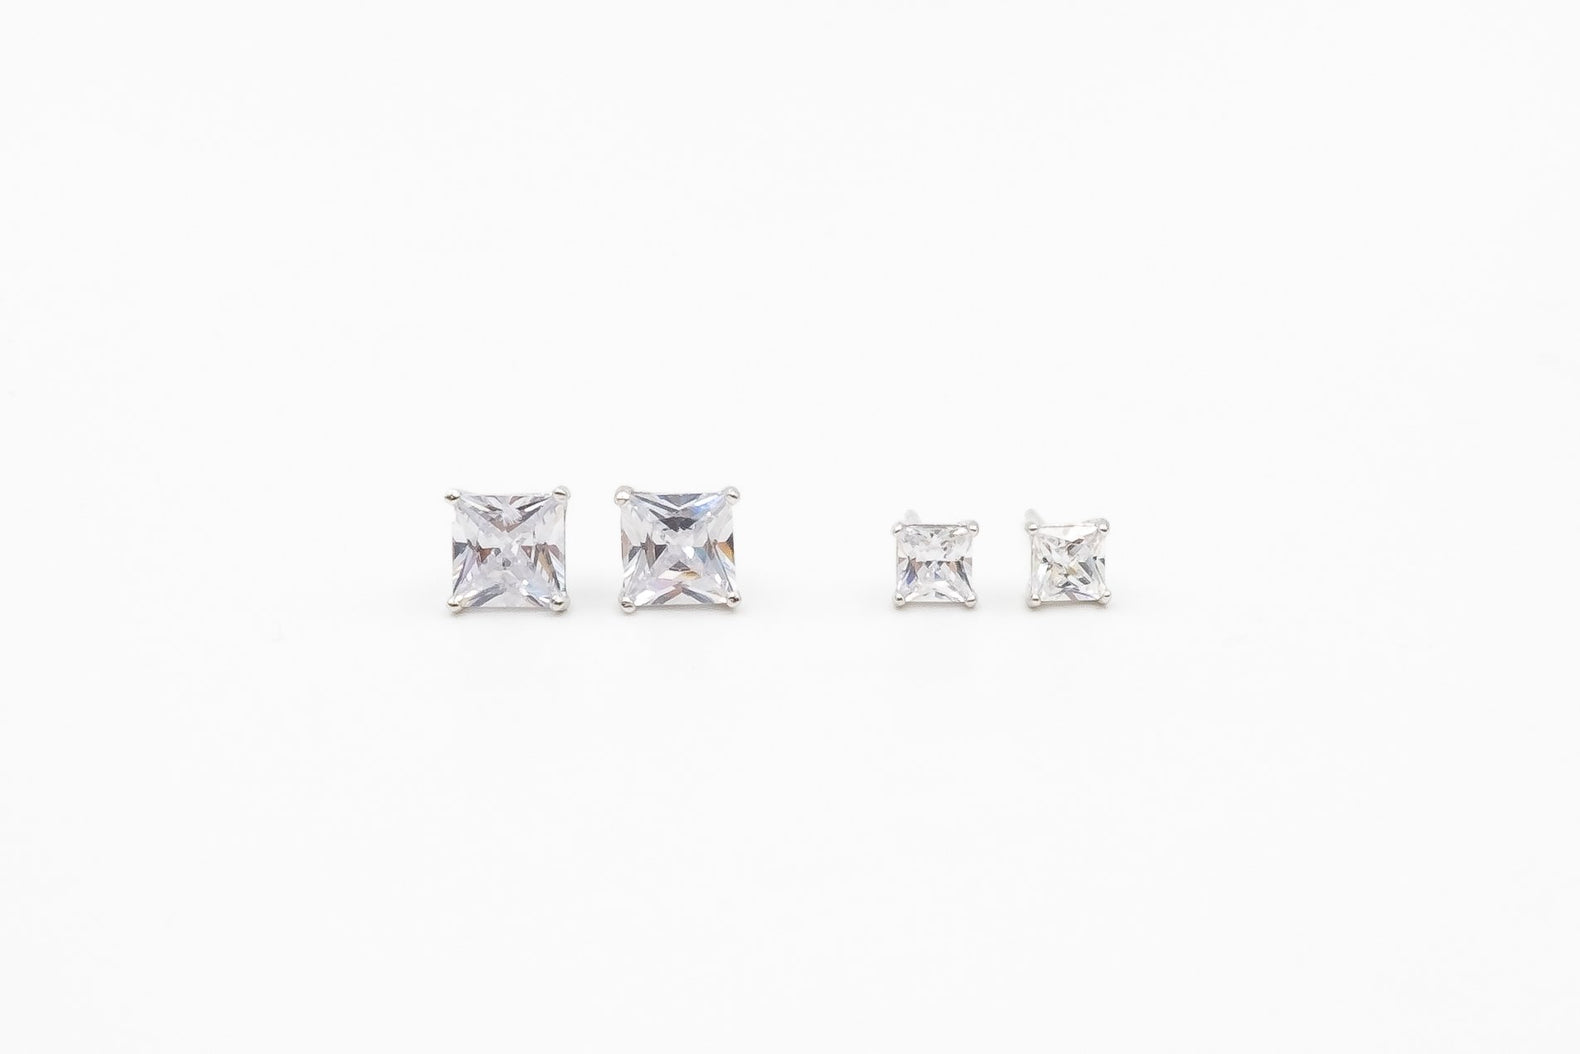 Square Diamond Earring Set (2 pairs)